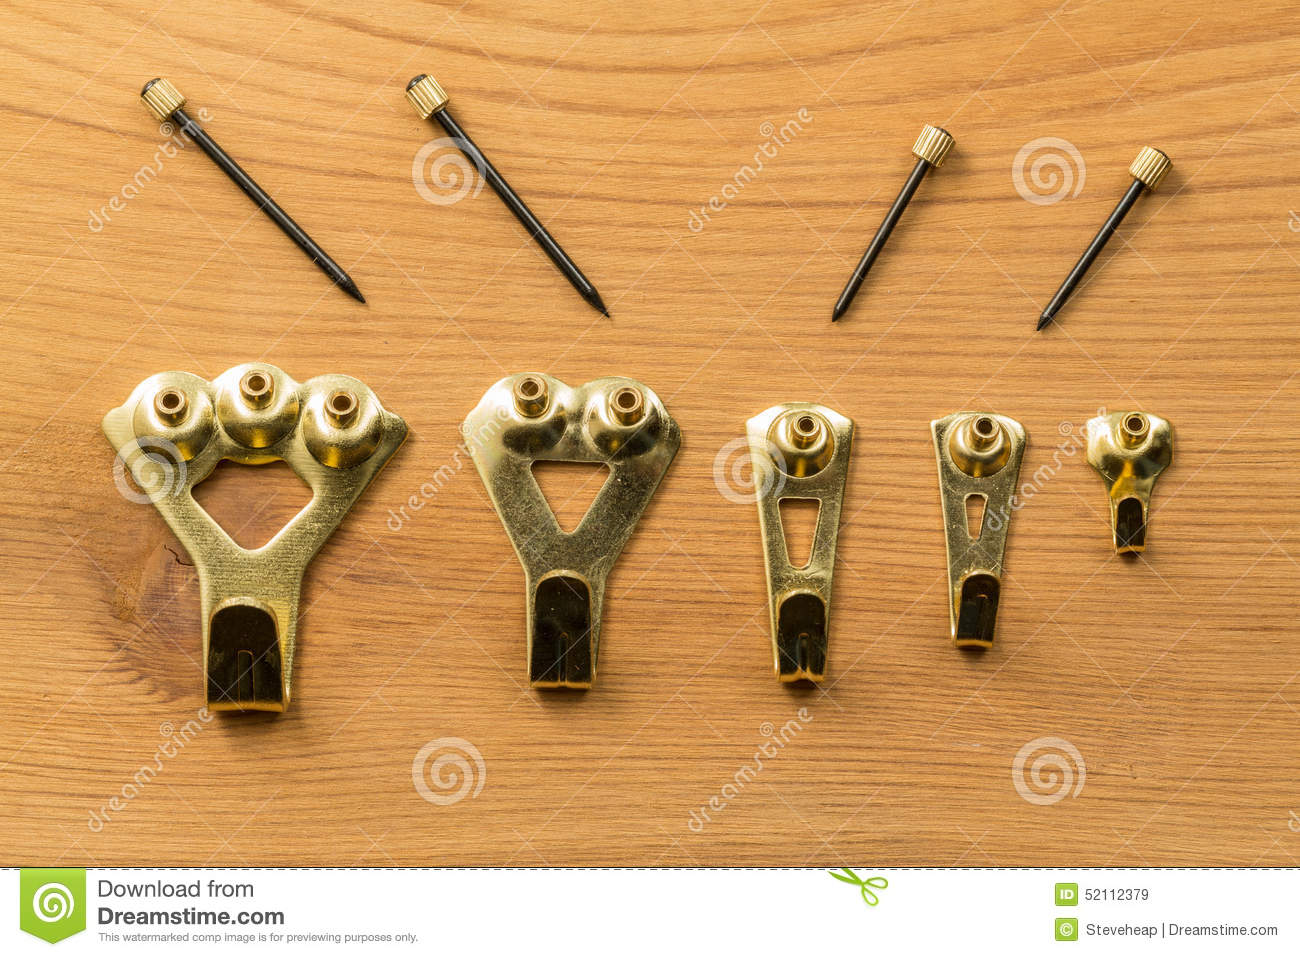 Set of picture hanging hooks and nails